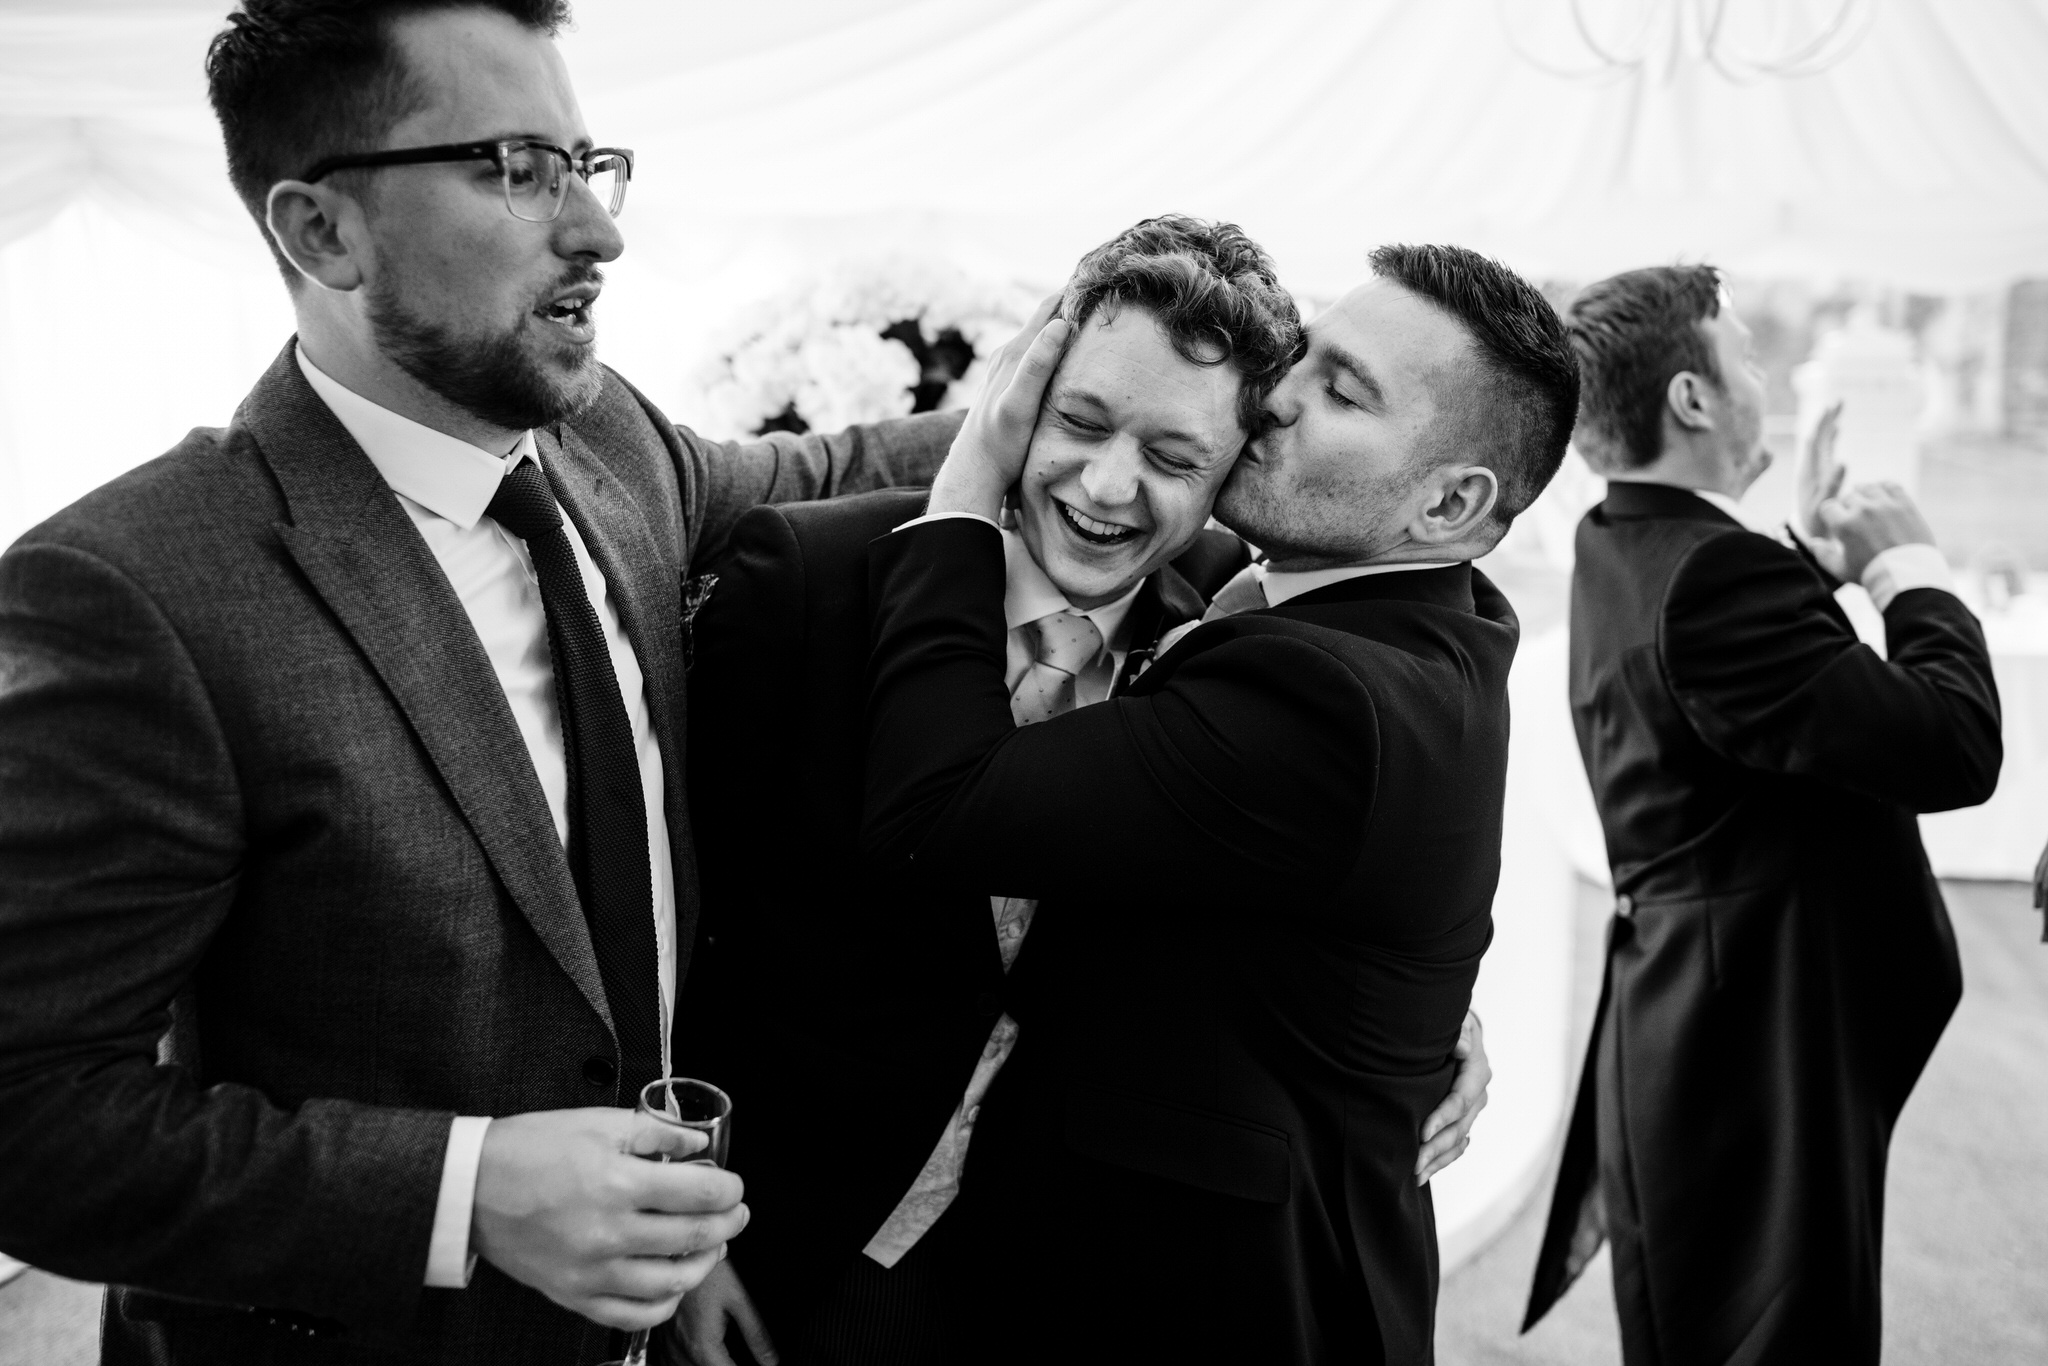 Groom gets a kiss from friend